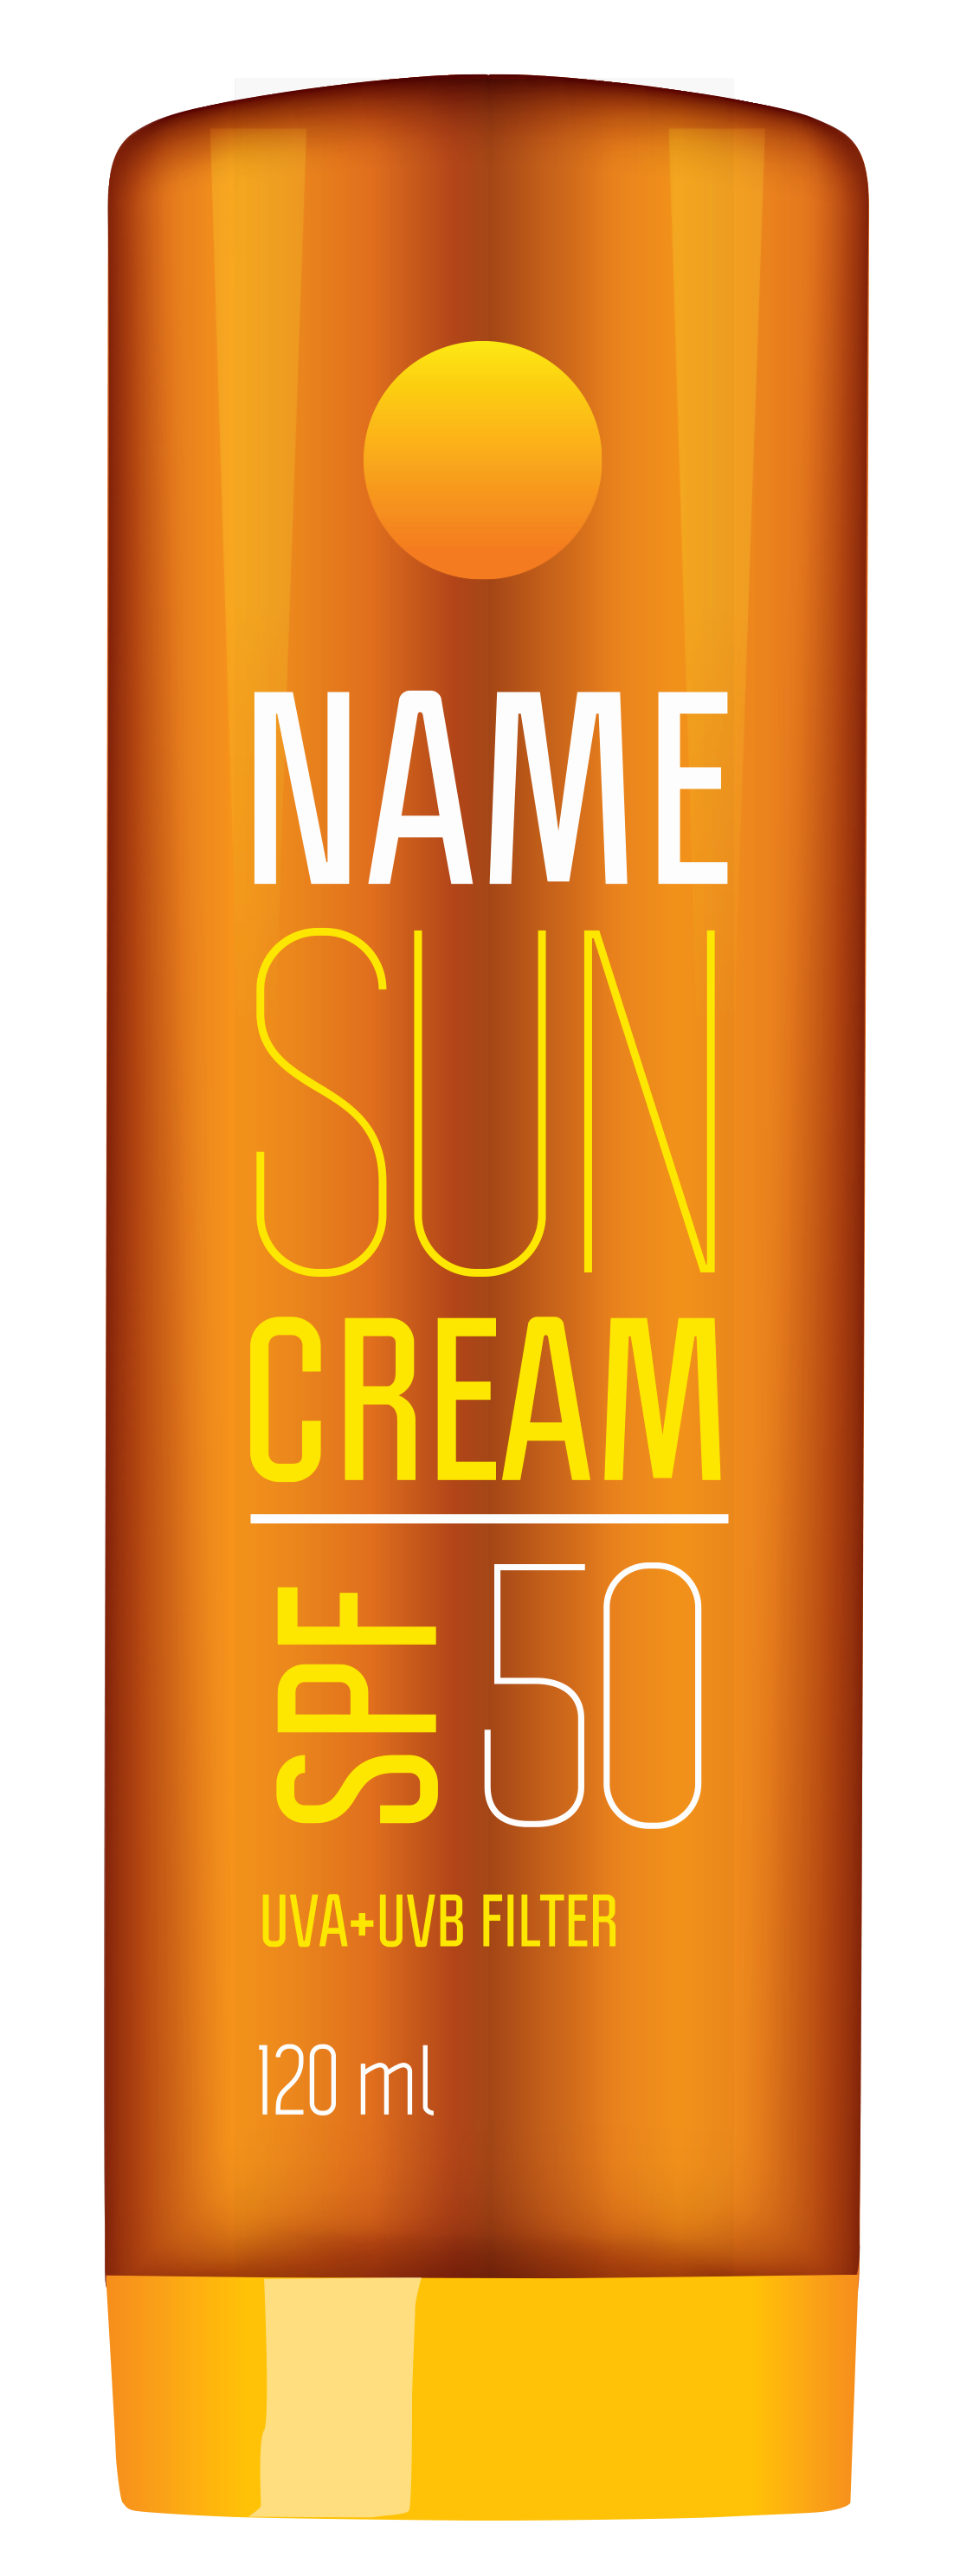 Sun tan lotion clipart graphic transparent download 28+ Collection of Sun Cream Clipart   High quality, free cliparts ... graphic transparent download